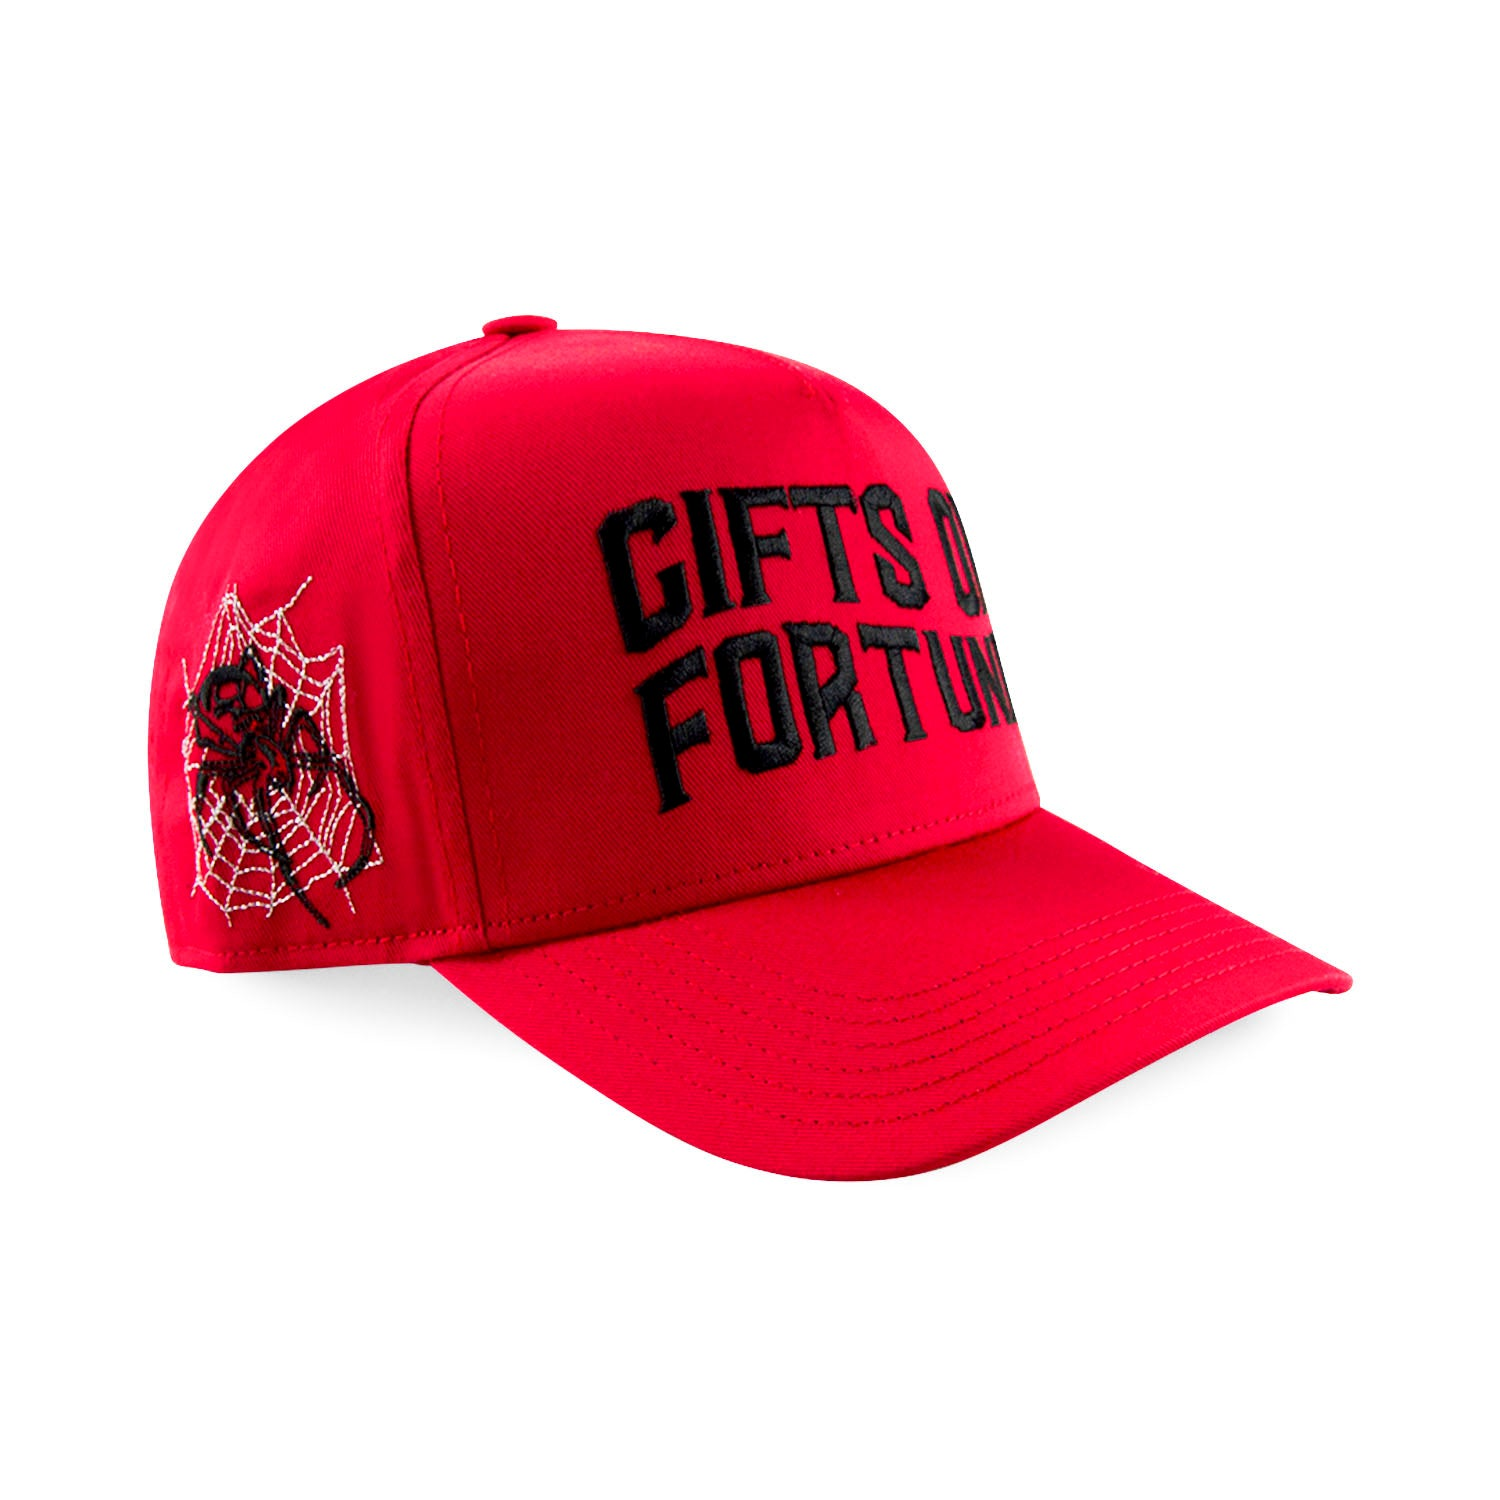 Red/Black Black Widow Trucker